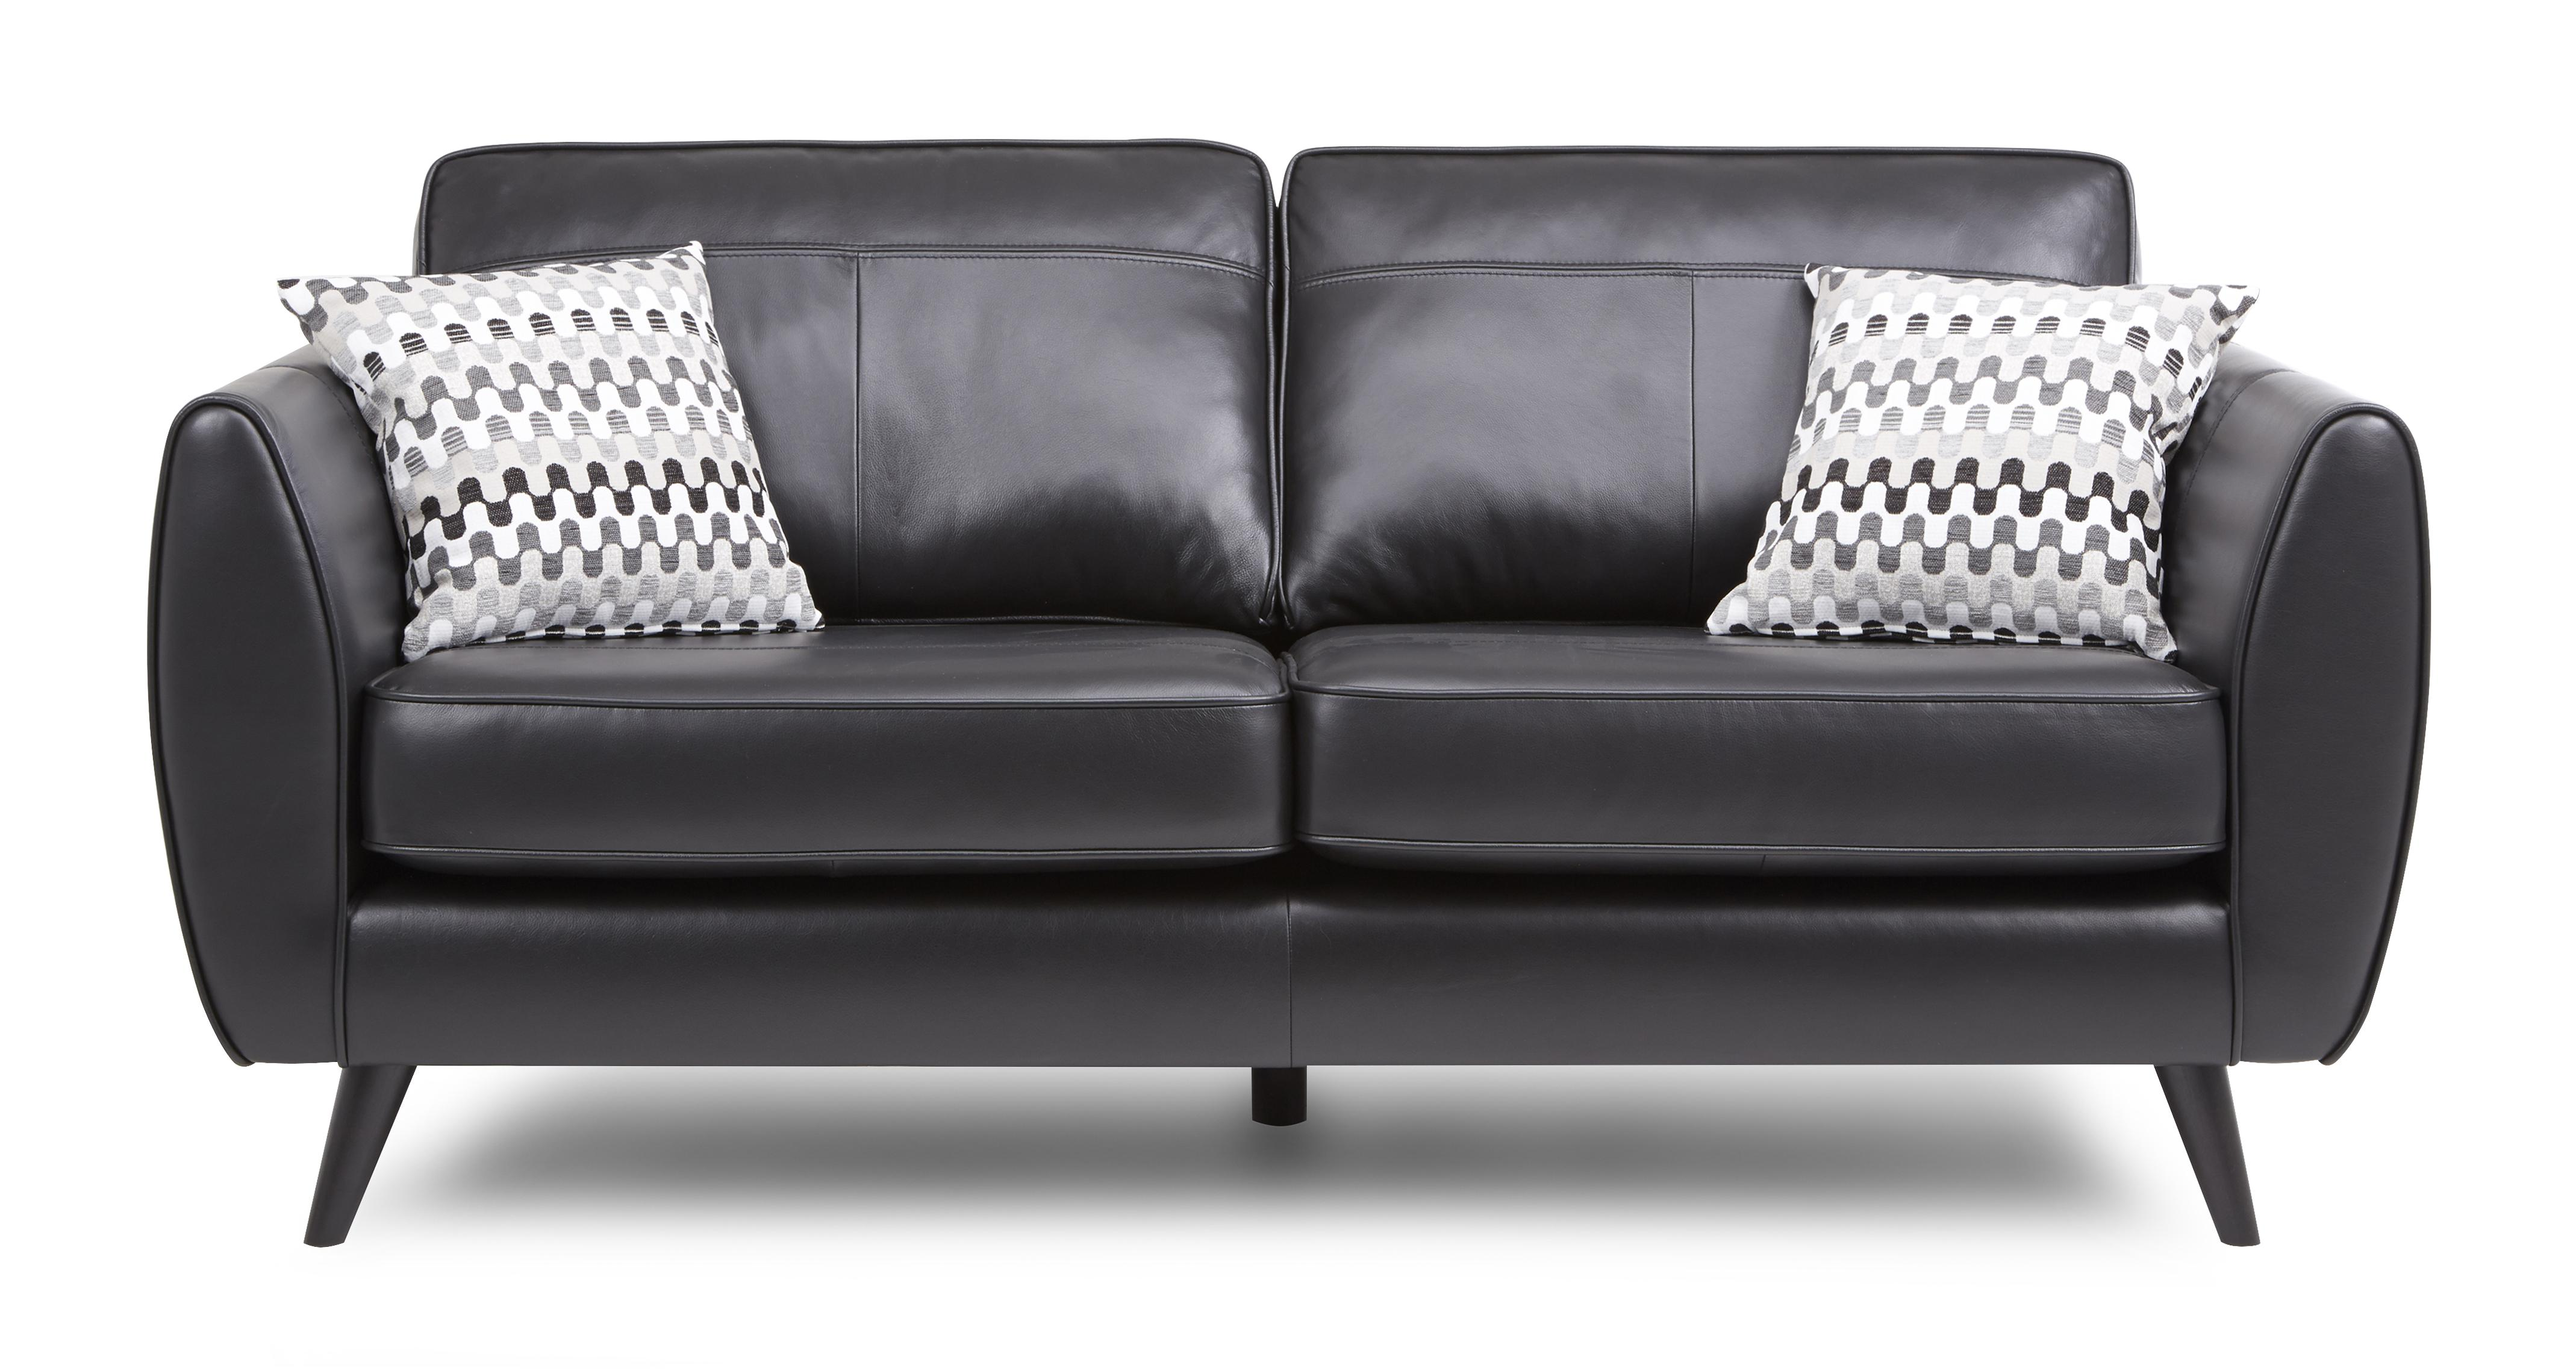 About the Aurora: Leather 3 Seater Sofa